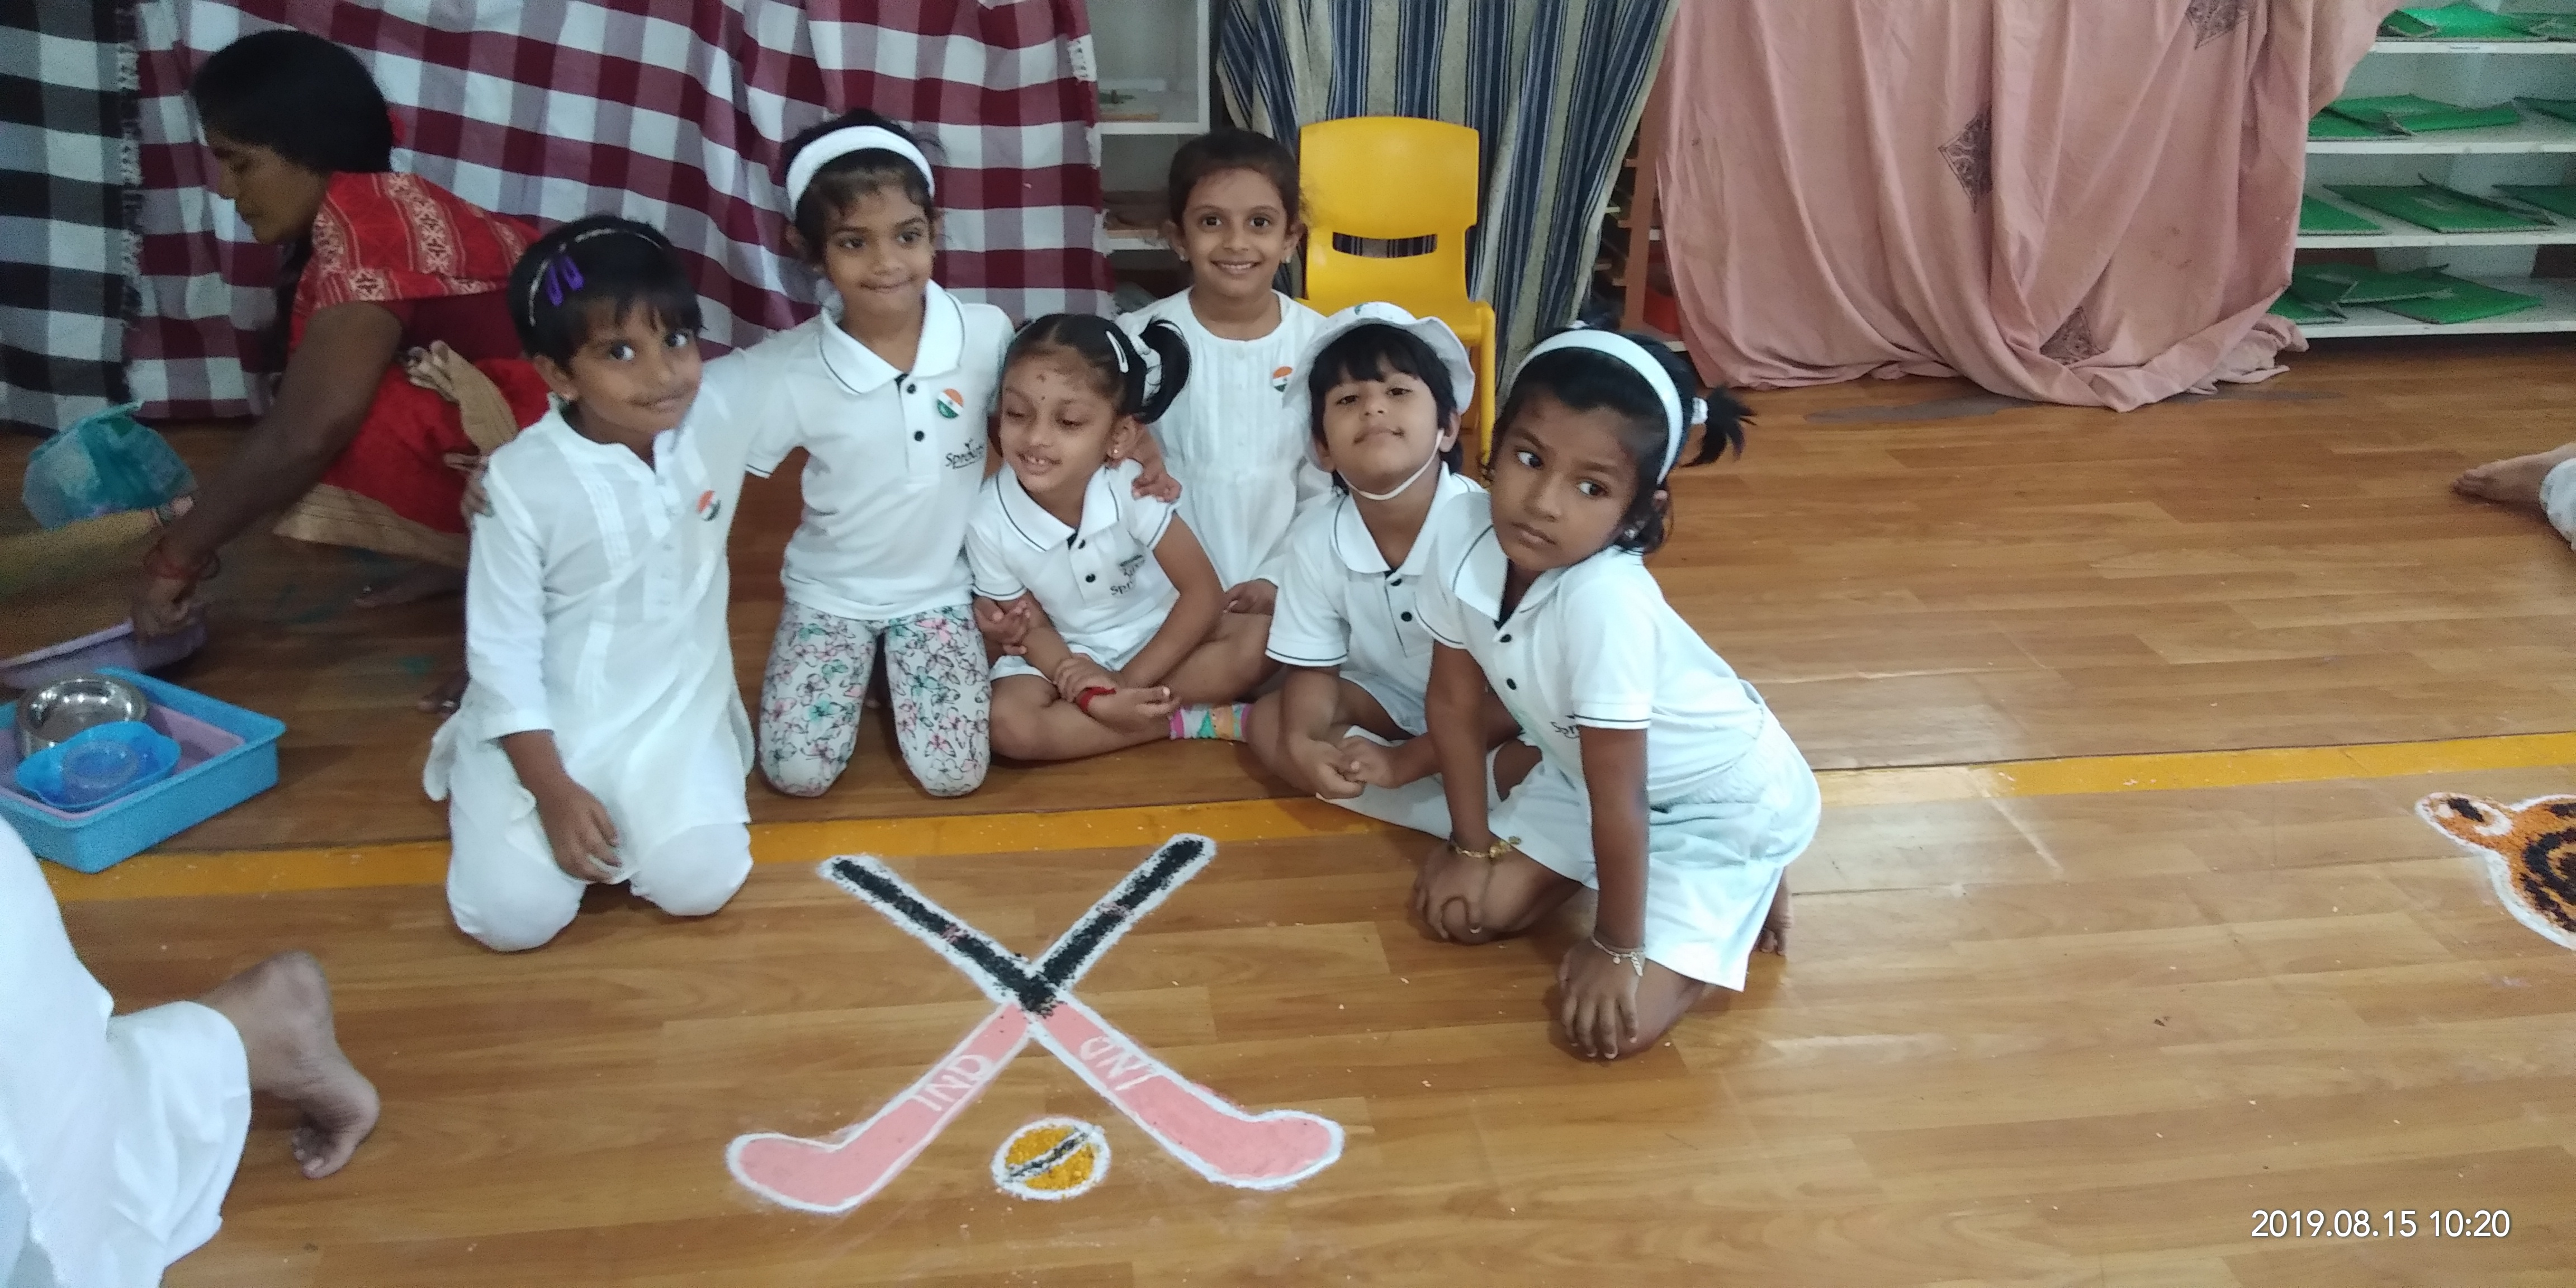 Hockey - the National Sport, illustrated